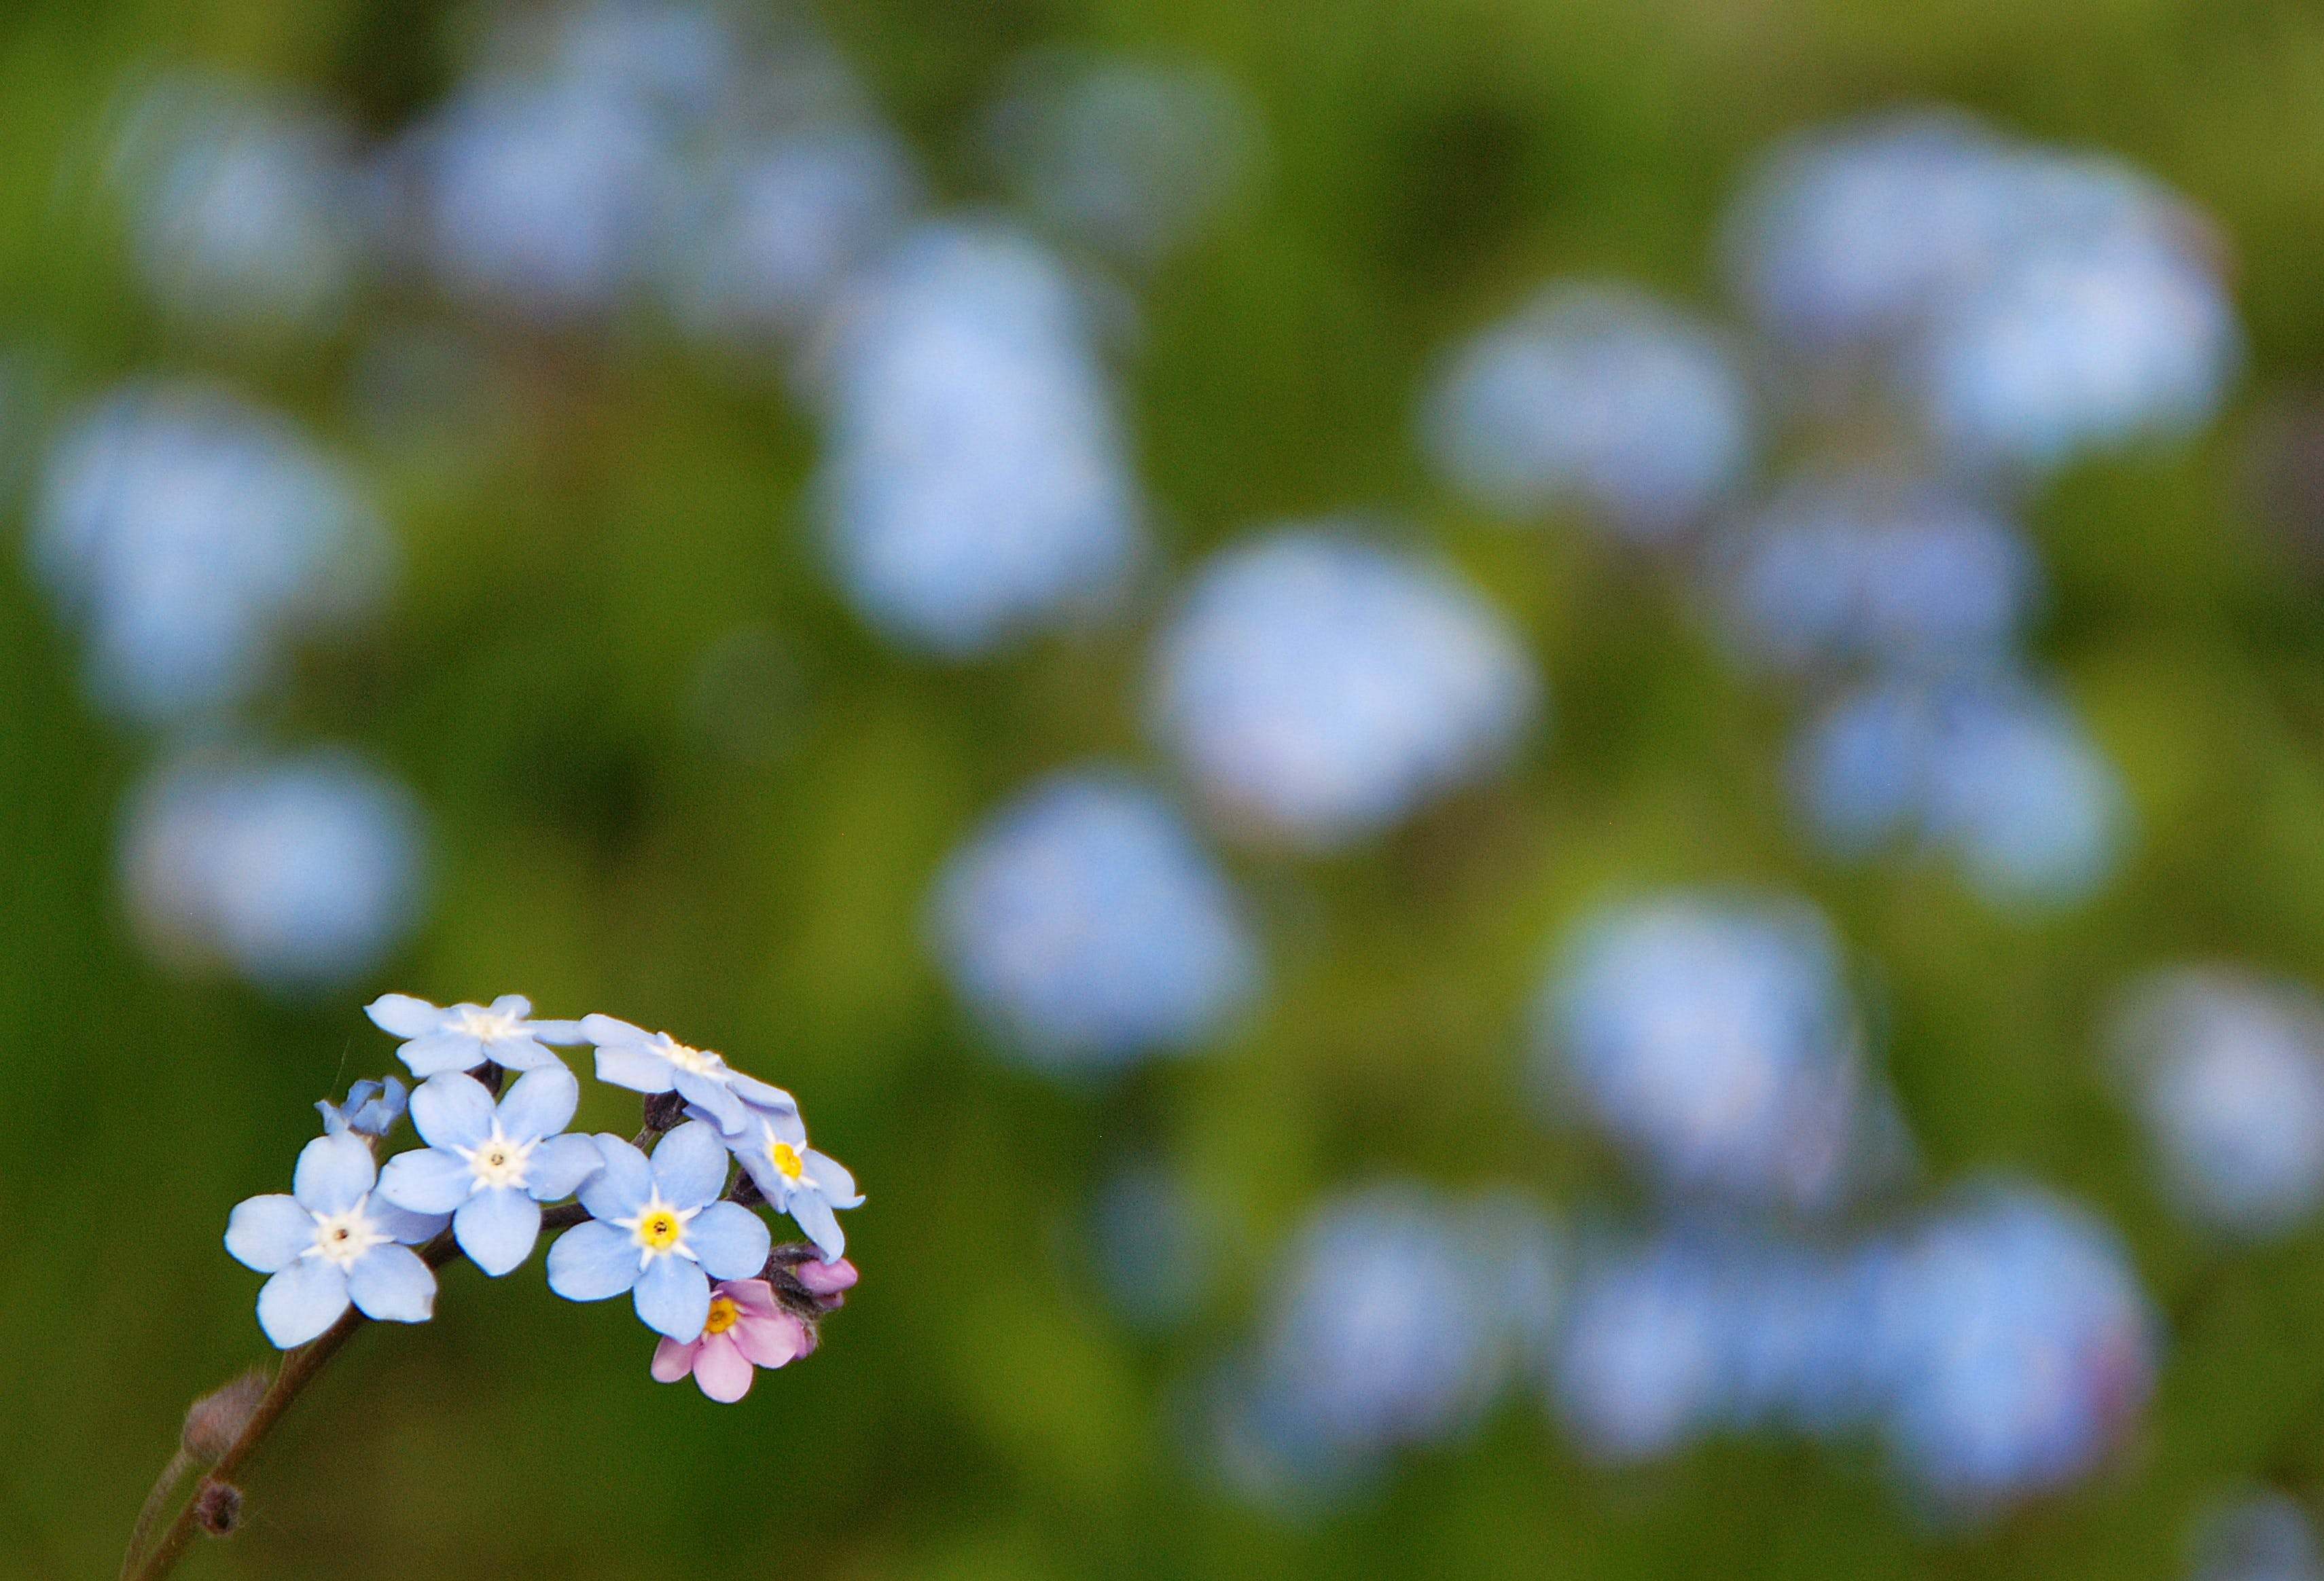 Blue Forget-me-not Flowers Selective-focus Photography